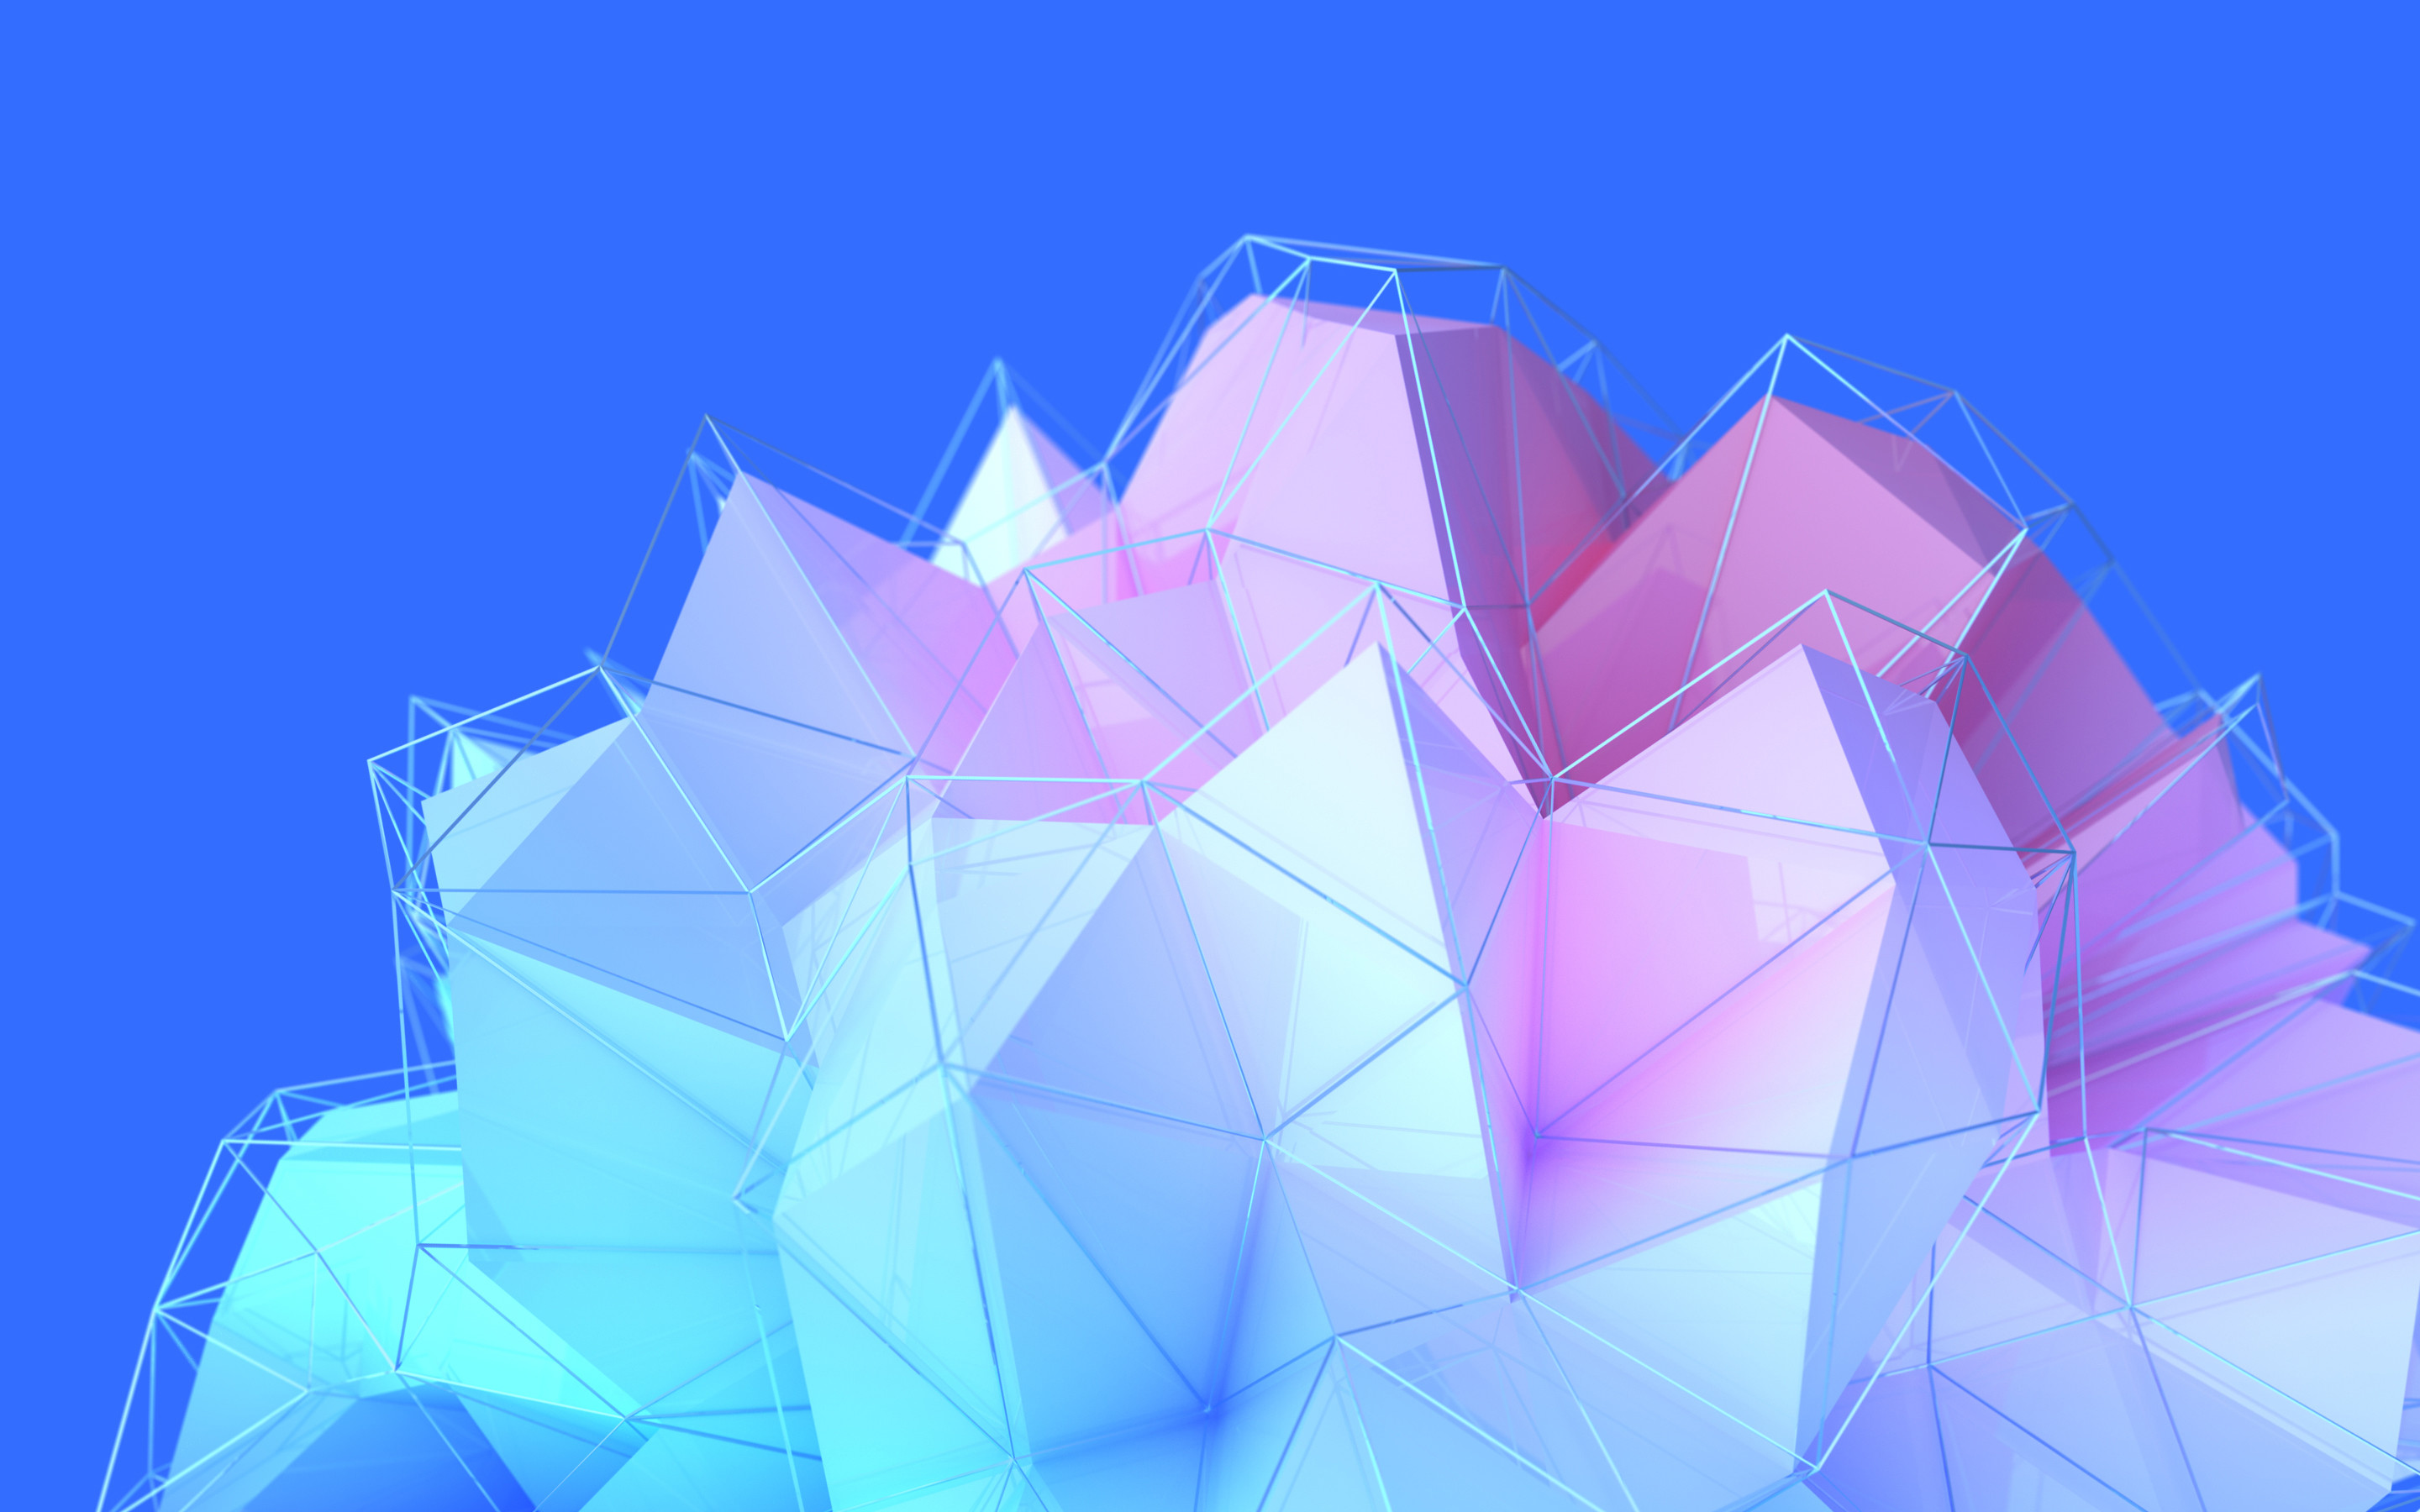 Res: 2880x1800, 3D Shapes